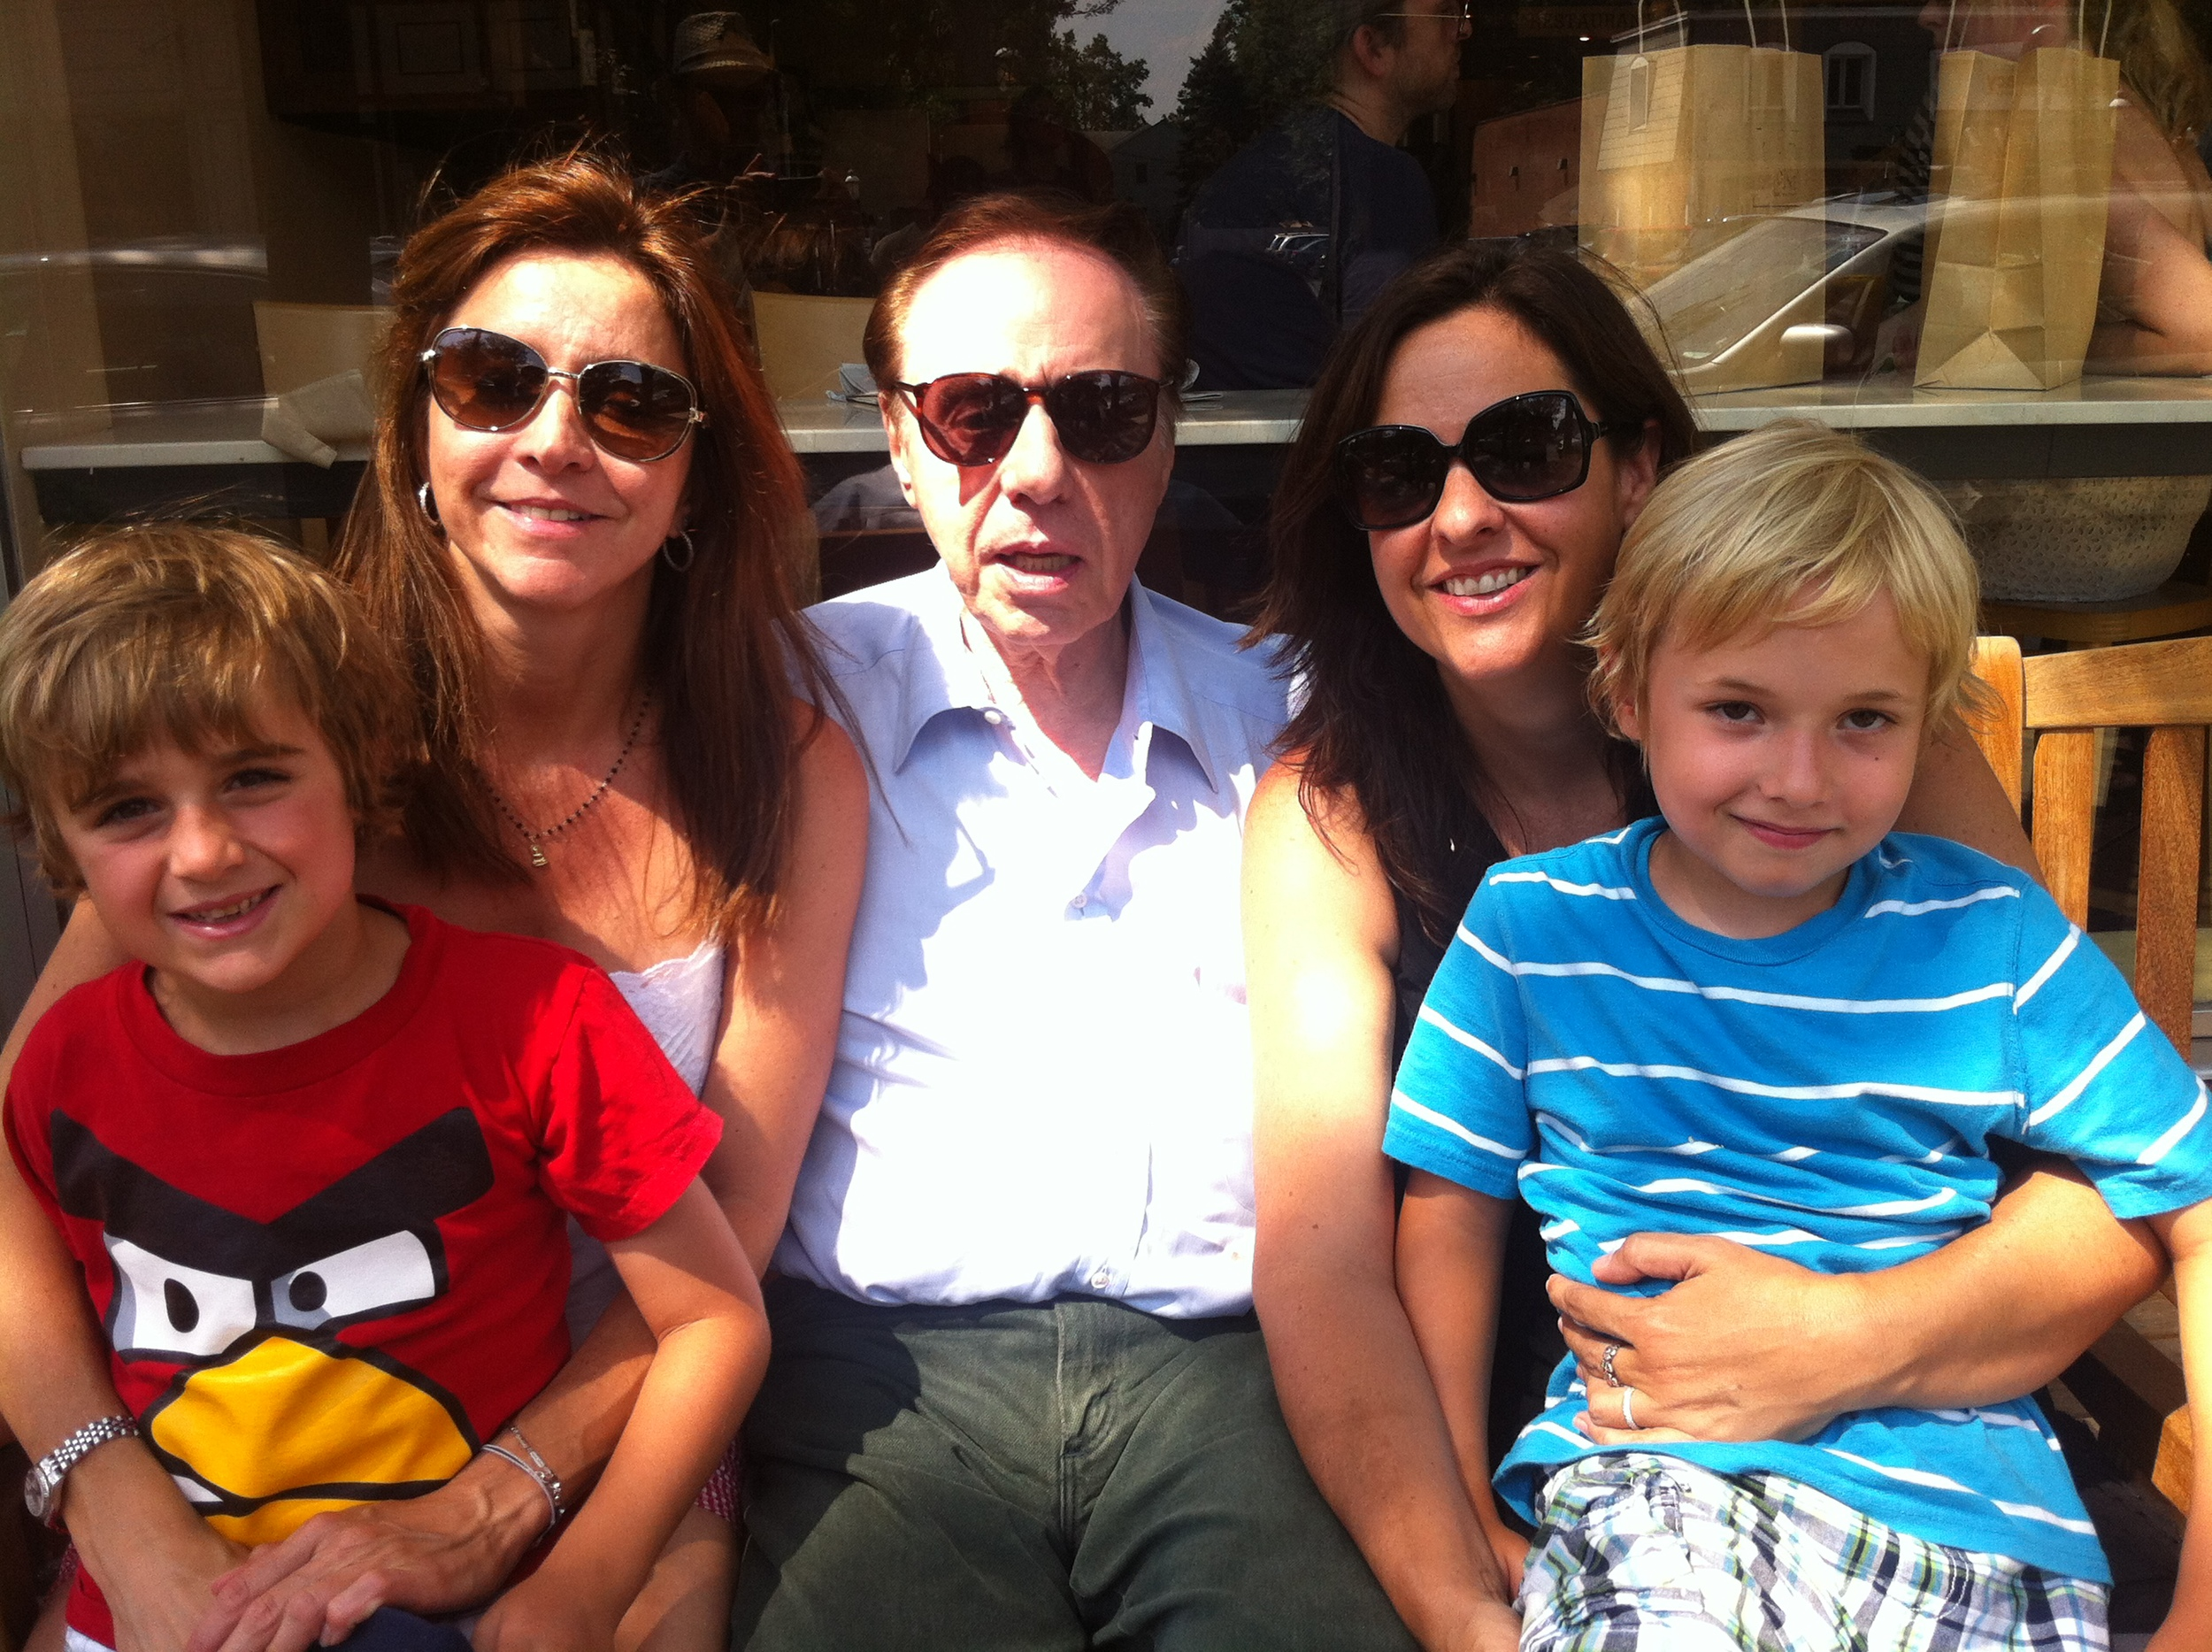 Peter Bogdanovich w daughter Antonia & son Maceo (Left); daughter Alexandra (Sashy) with son Levi (Right)